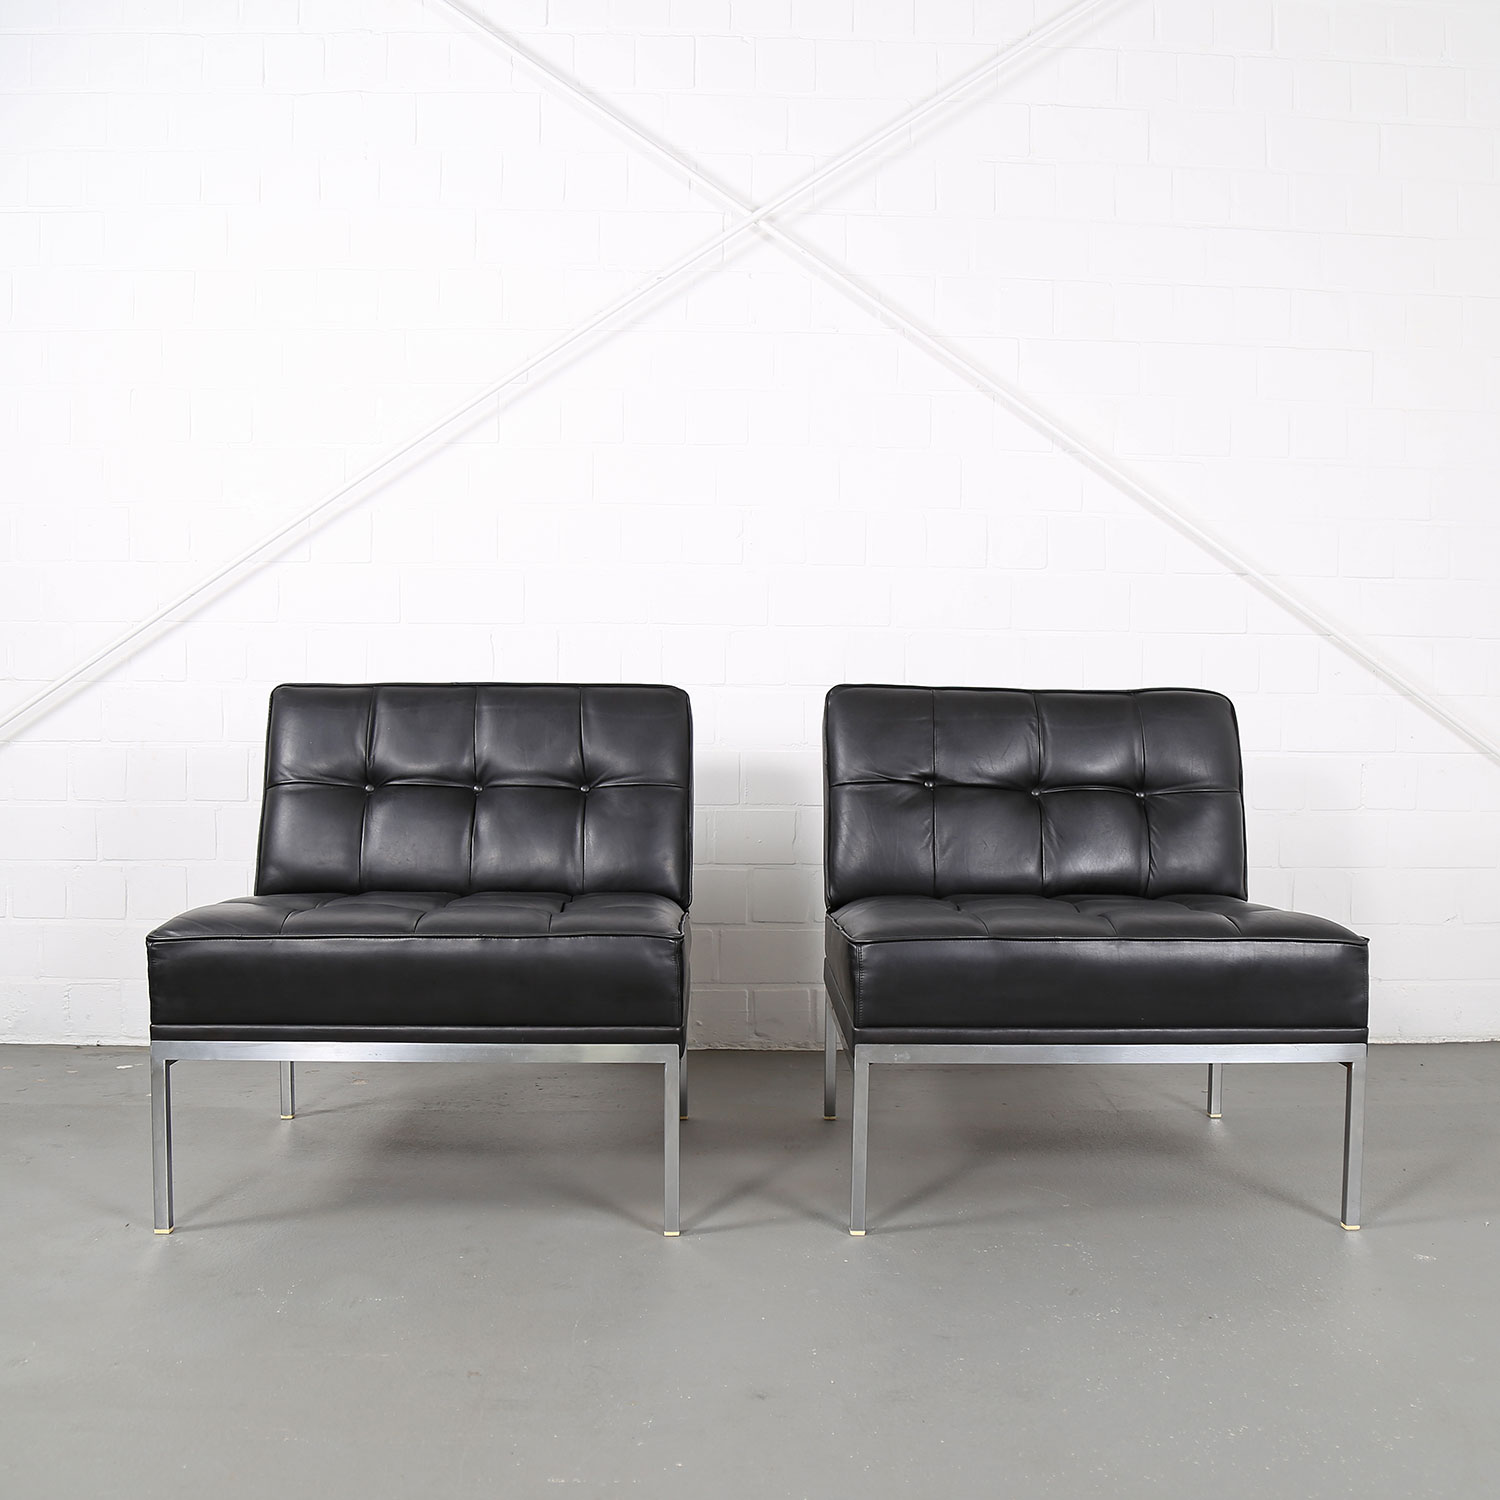 Set Of 2 Leather Lounge Chairs Johannes Spalt For Wittmann Model